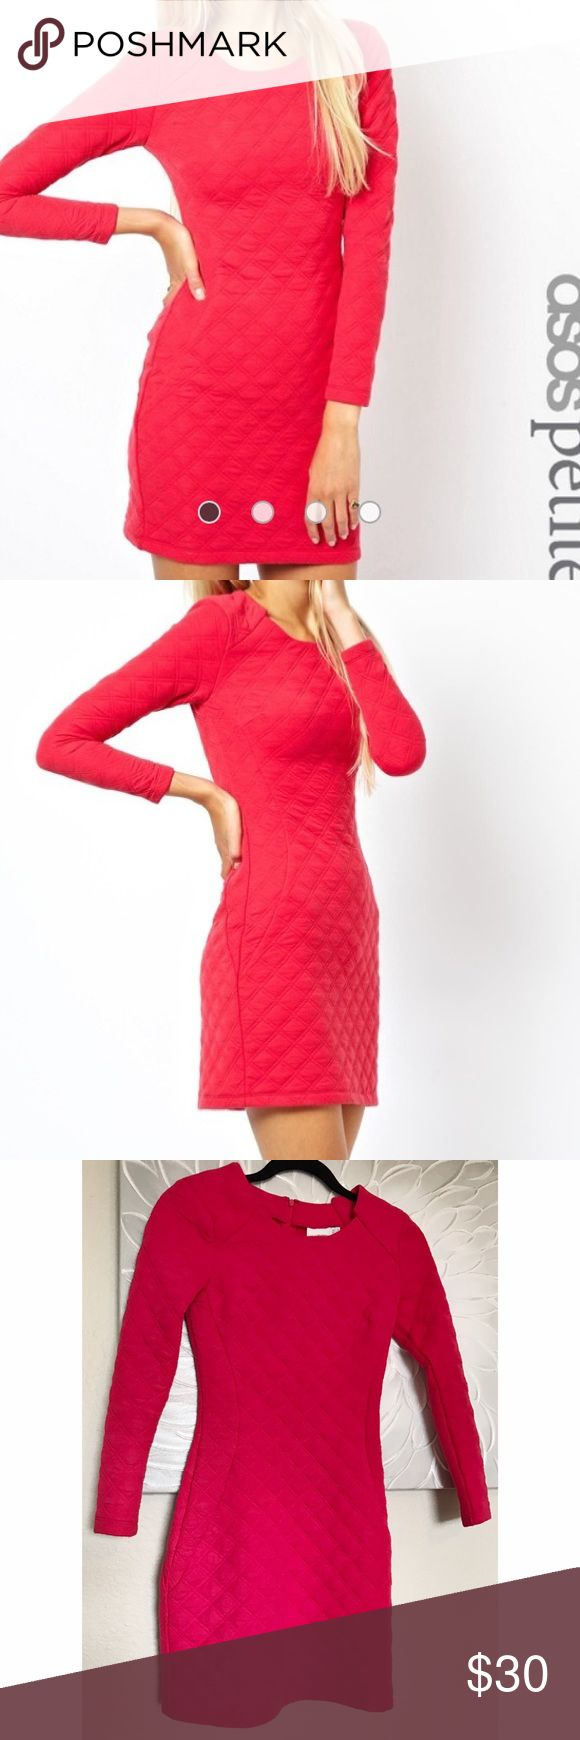 Asos Petite Quilted Pink Dress Structured long sleeve quilted bright red ish pink dress. Gorgeous and thick dress. Really good quality. The tailoring and structuring is really nice. This seriously sucks everything in and looks bomb on! Hidden zipper up the back of the dress. Asos petite size 2, but I'm a 00 xxs and it fits perfectly. Ask about 🅿️ay🅿️al or Ⓜ️ercari! ASOS Petite Dresses Mini